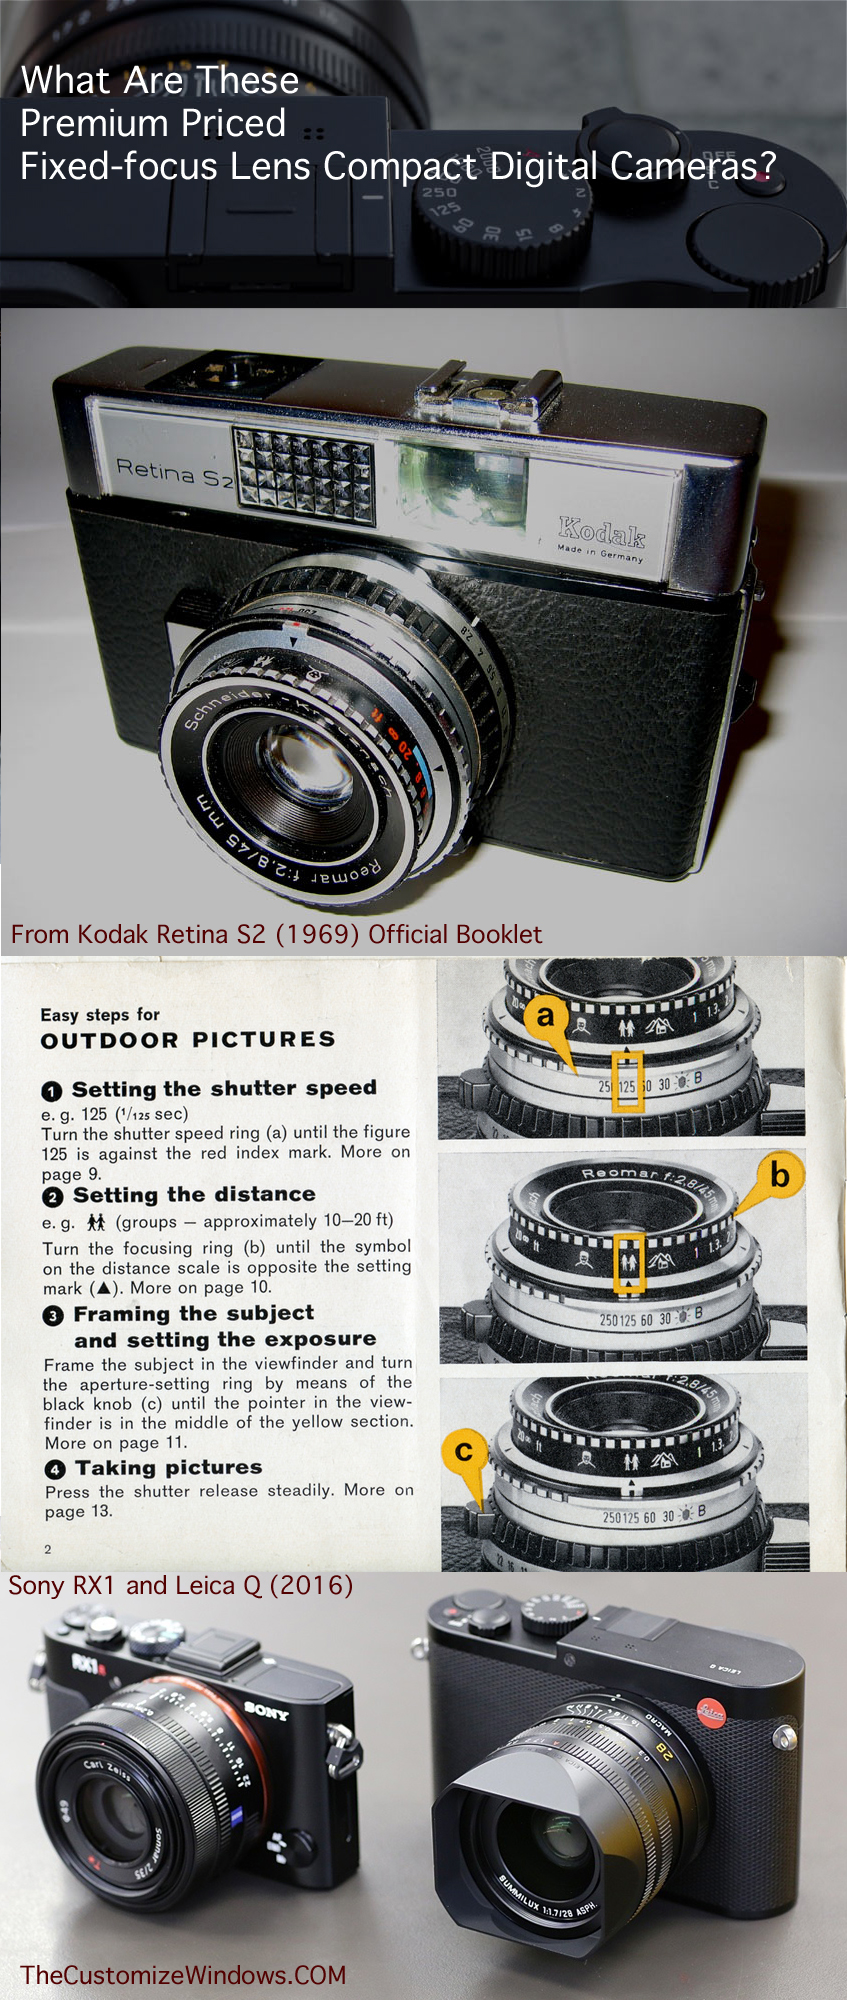 What-is-Fixed-focus-Lens-Compact-Digital-Cameras